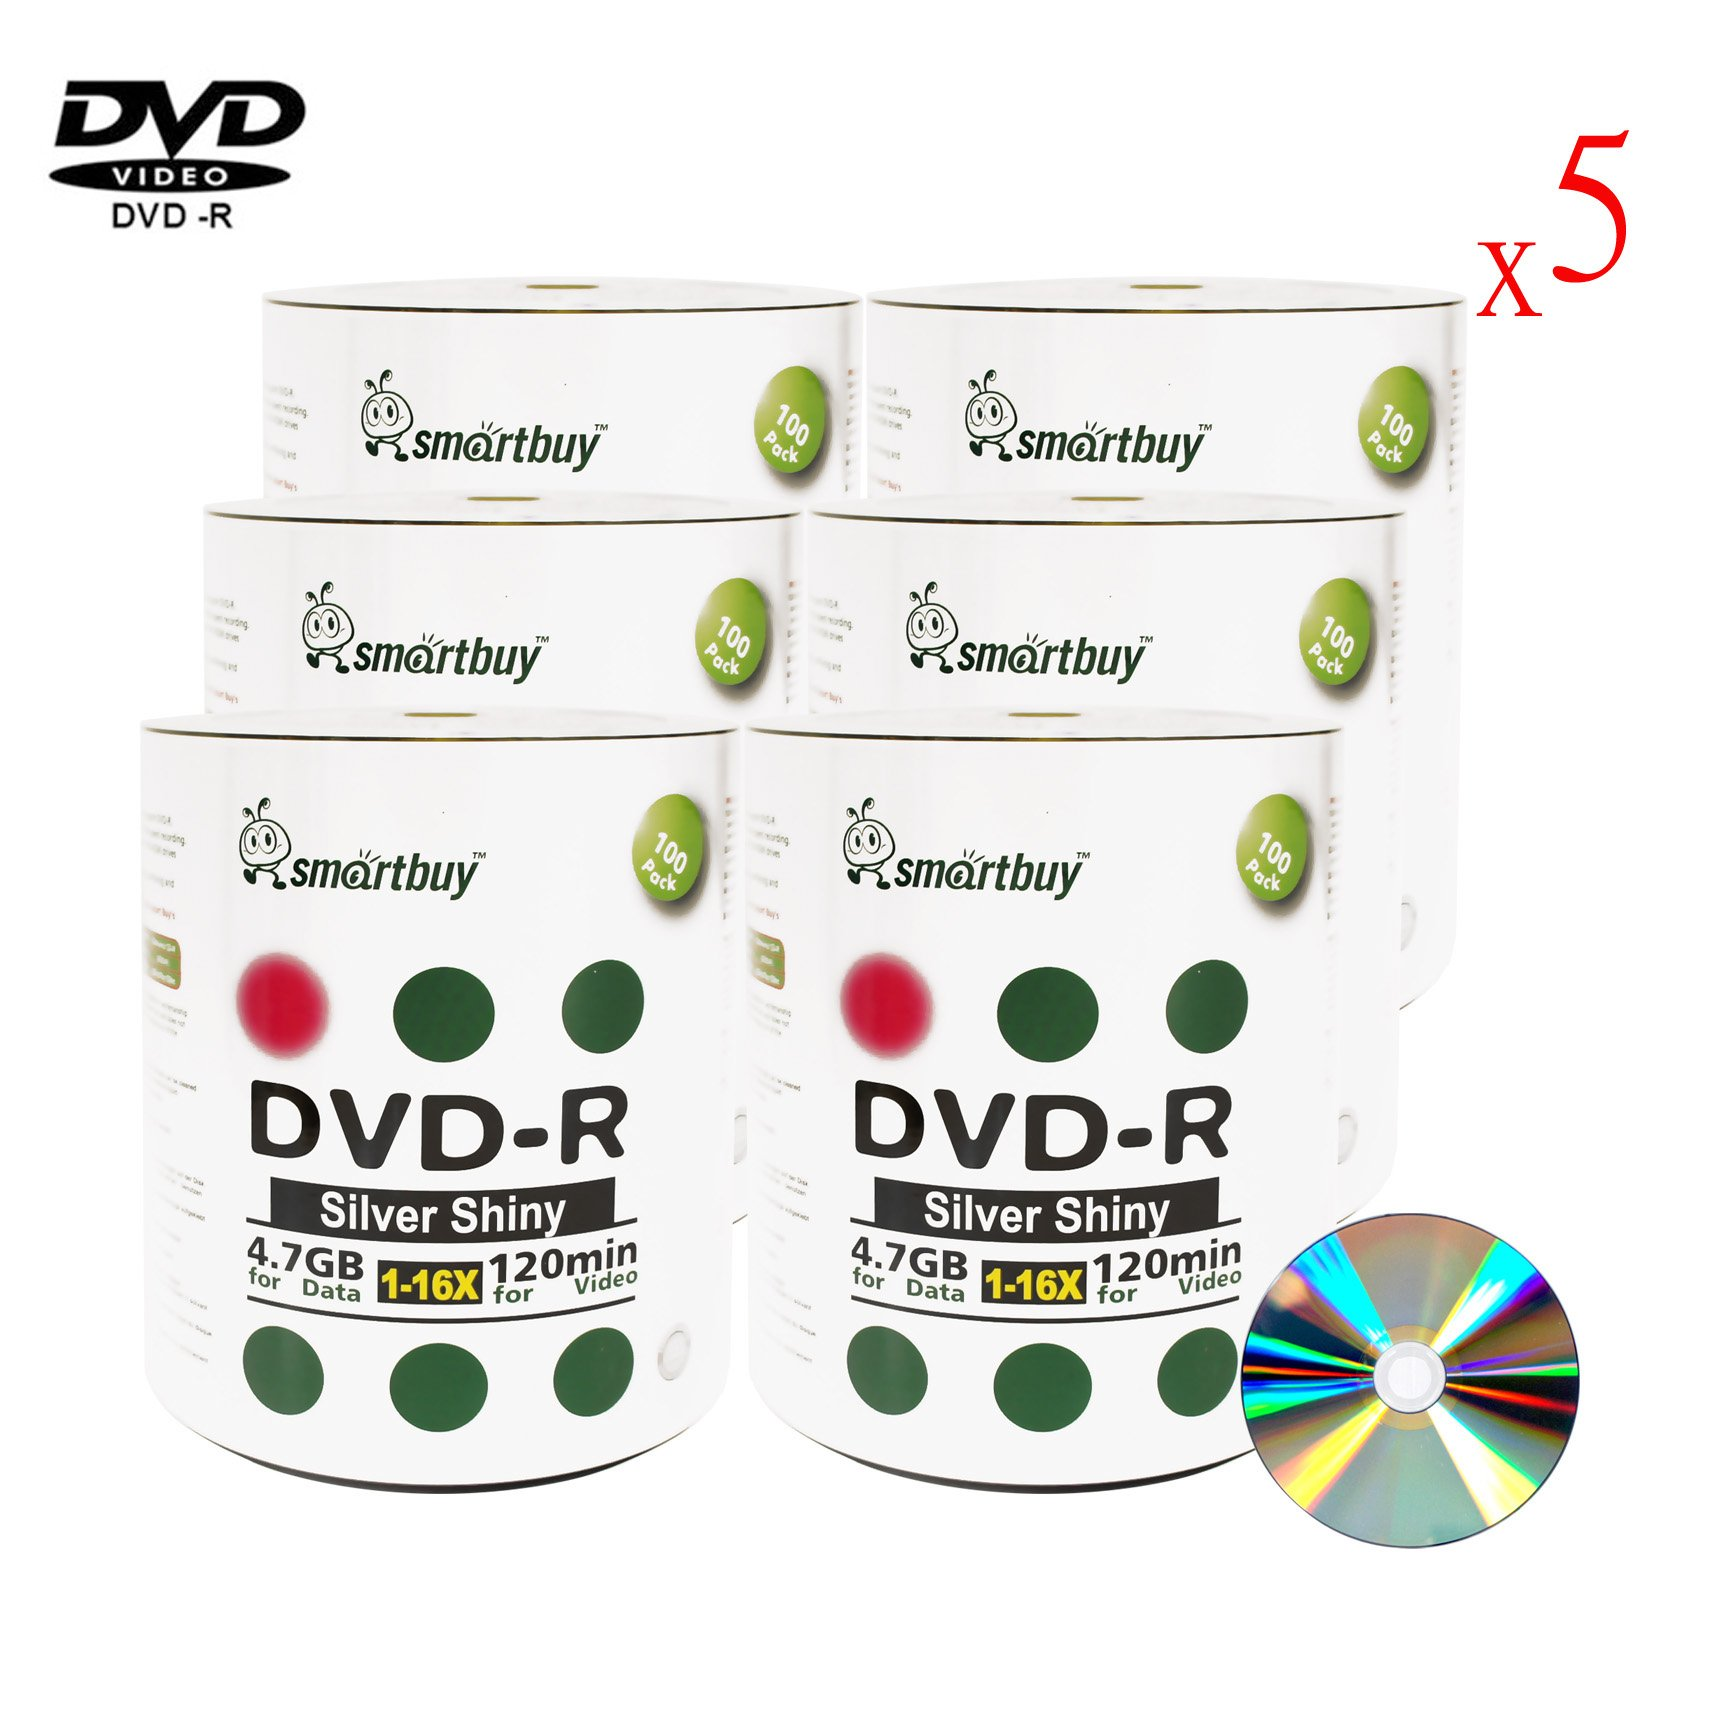 Smartbuy 4.7gb/120min 16x DVD-R Shiny Silver Blank Data Video Recordable Media Disc (3000-Disc)